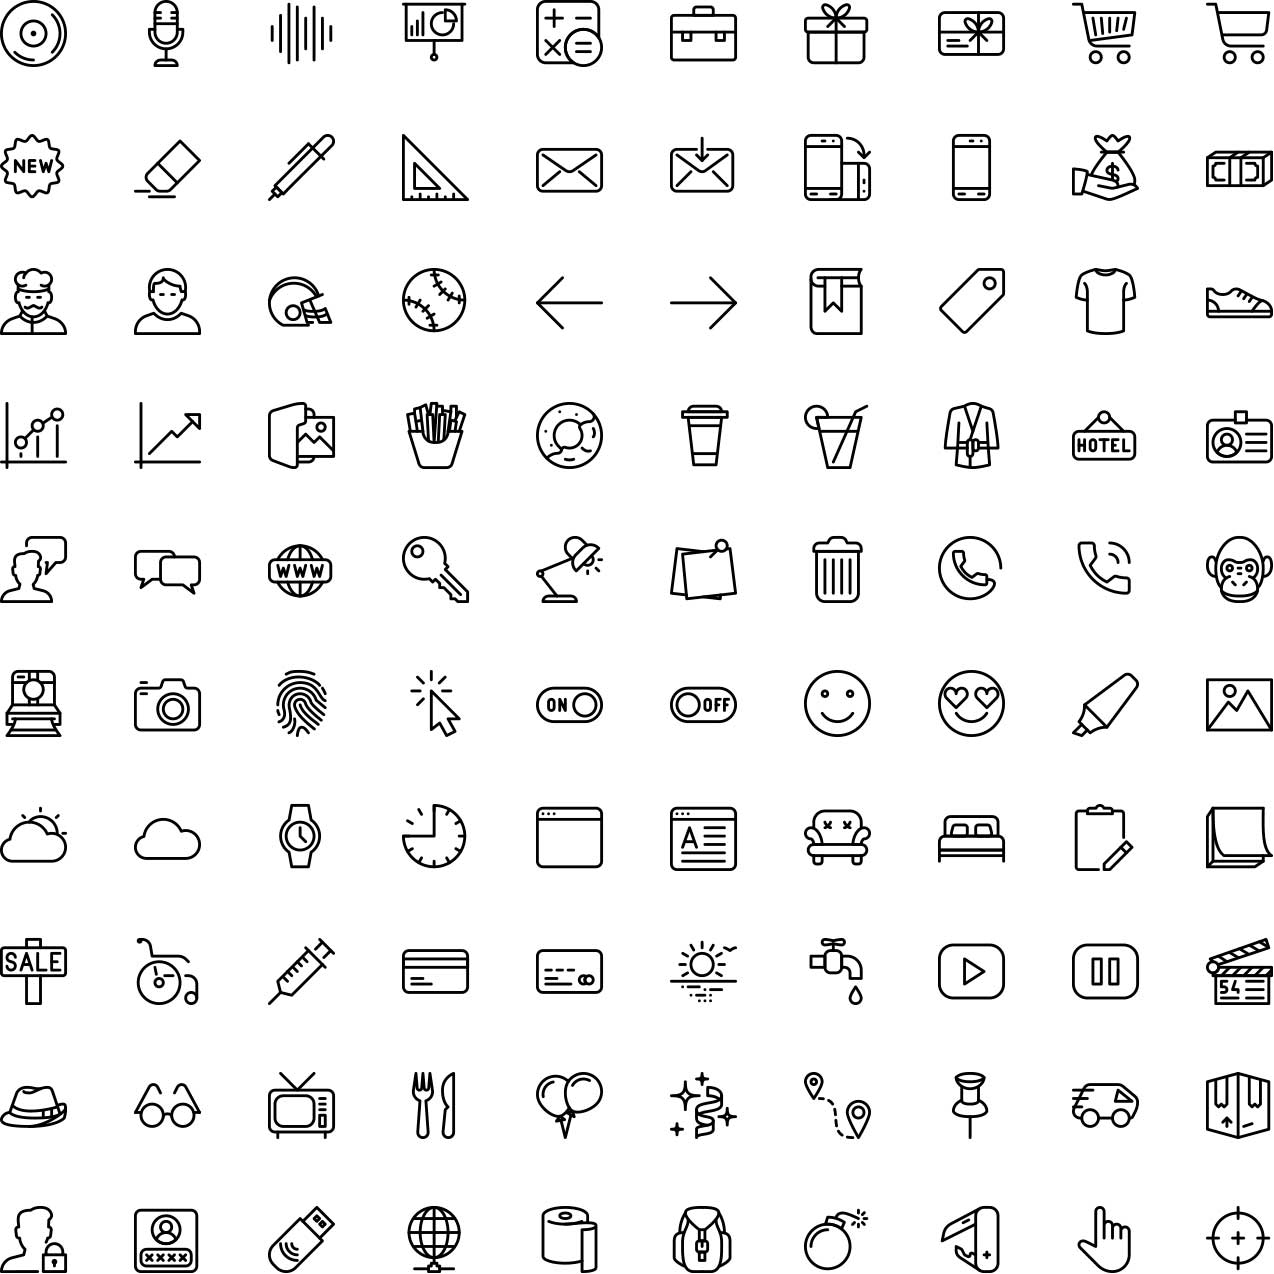 100 Free Icons Pack